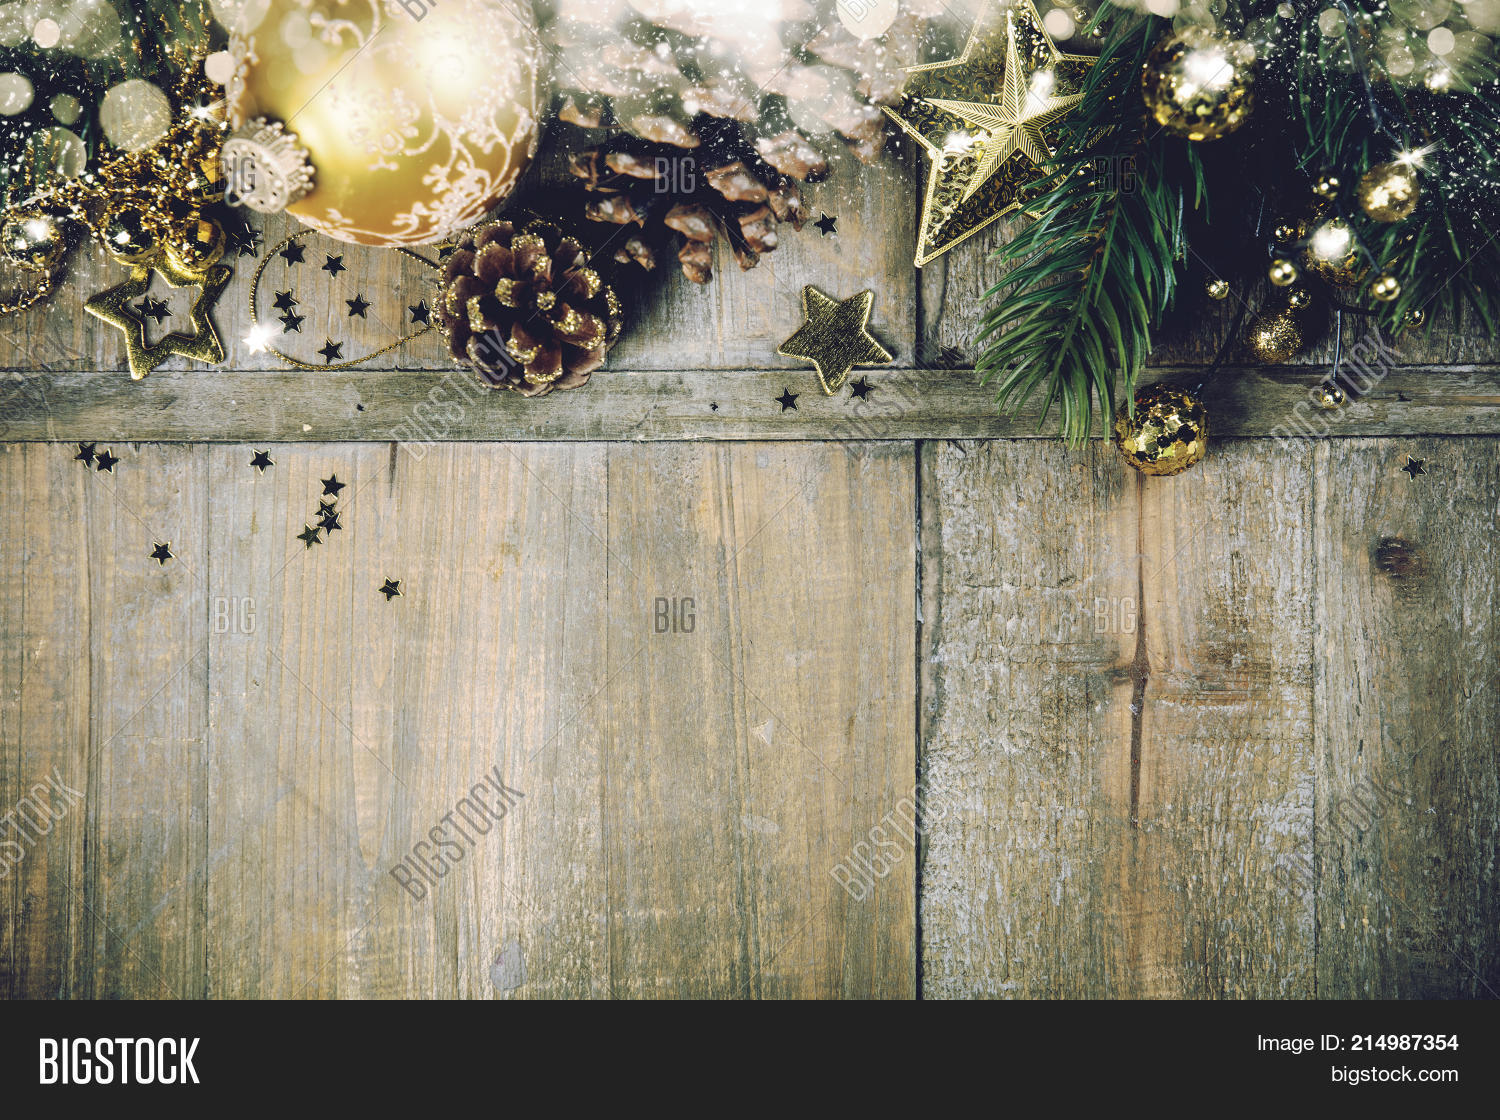 Christmas Wood Background.Rustic Wood Background Image Photo Free Trial Bigstock